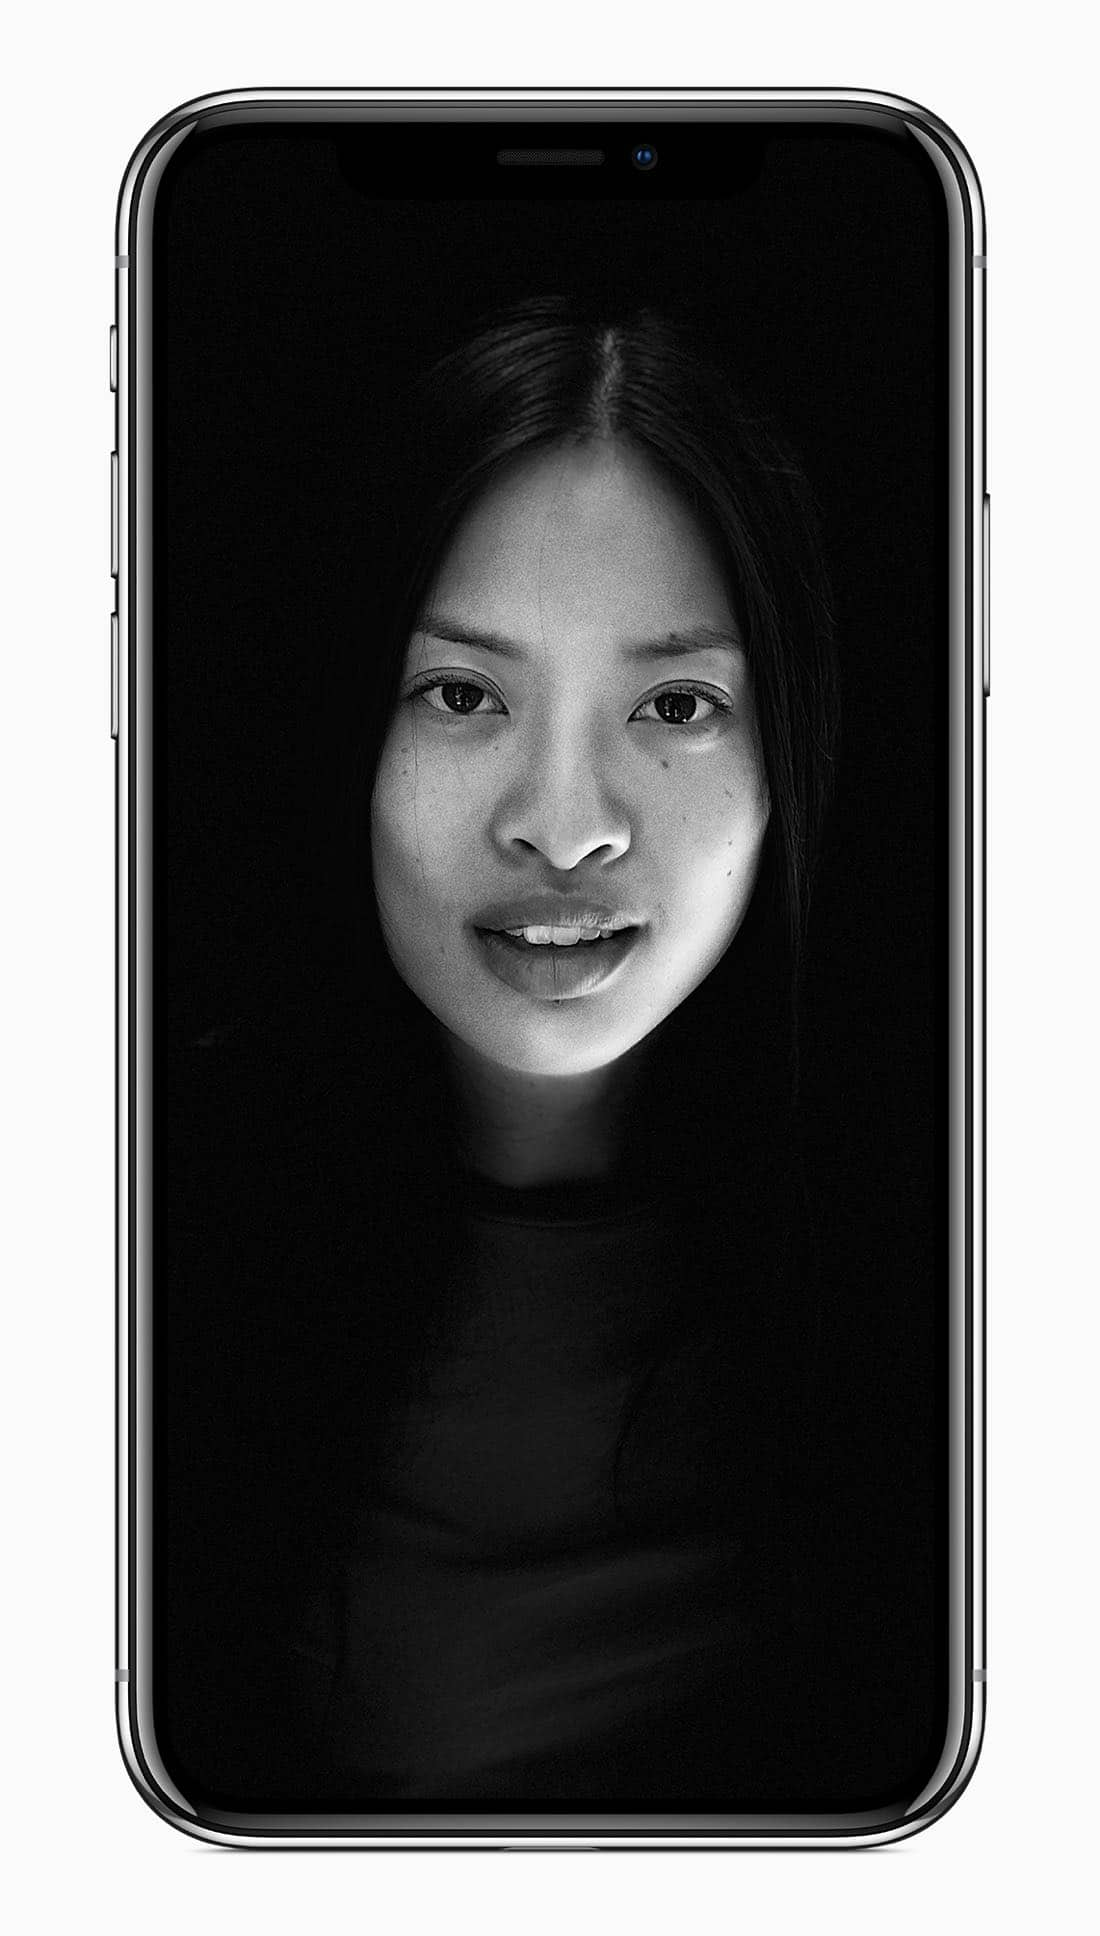 iphonex_camera_front_lighting_five